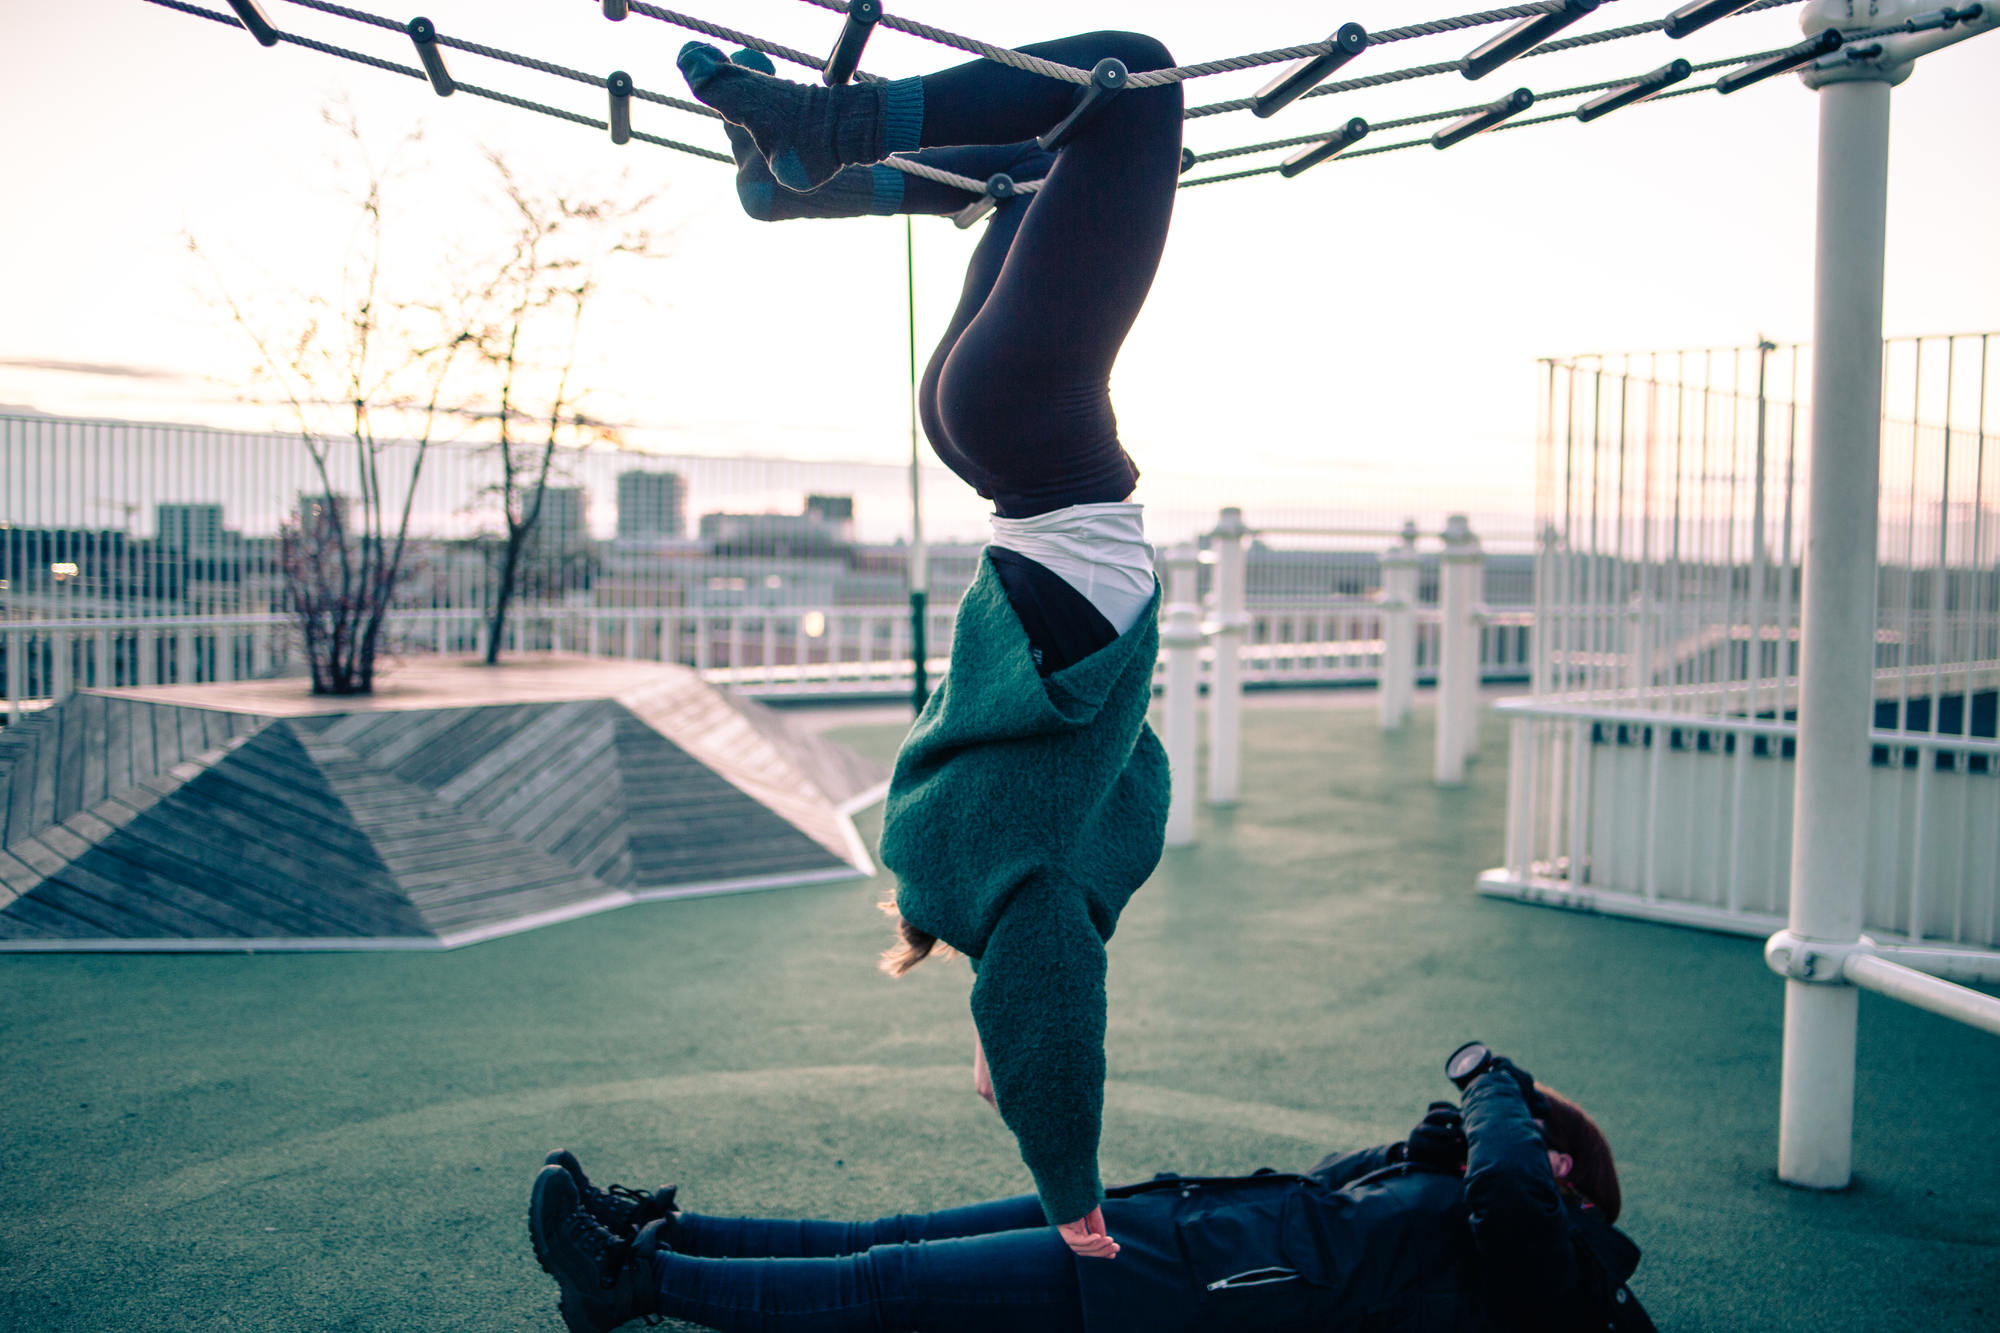 urban-yoga-photoshoot-copenhagen-silhouettes-poses-10